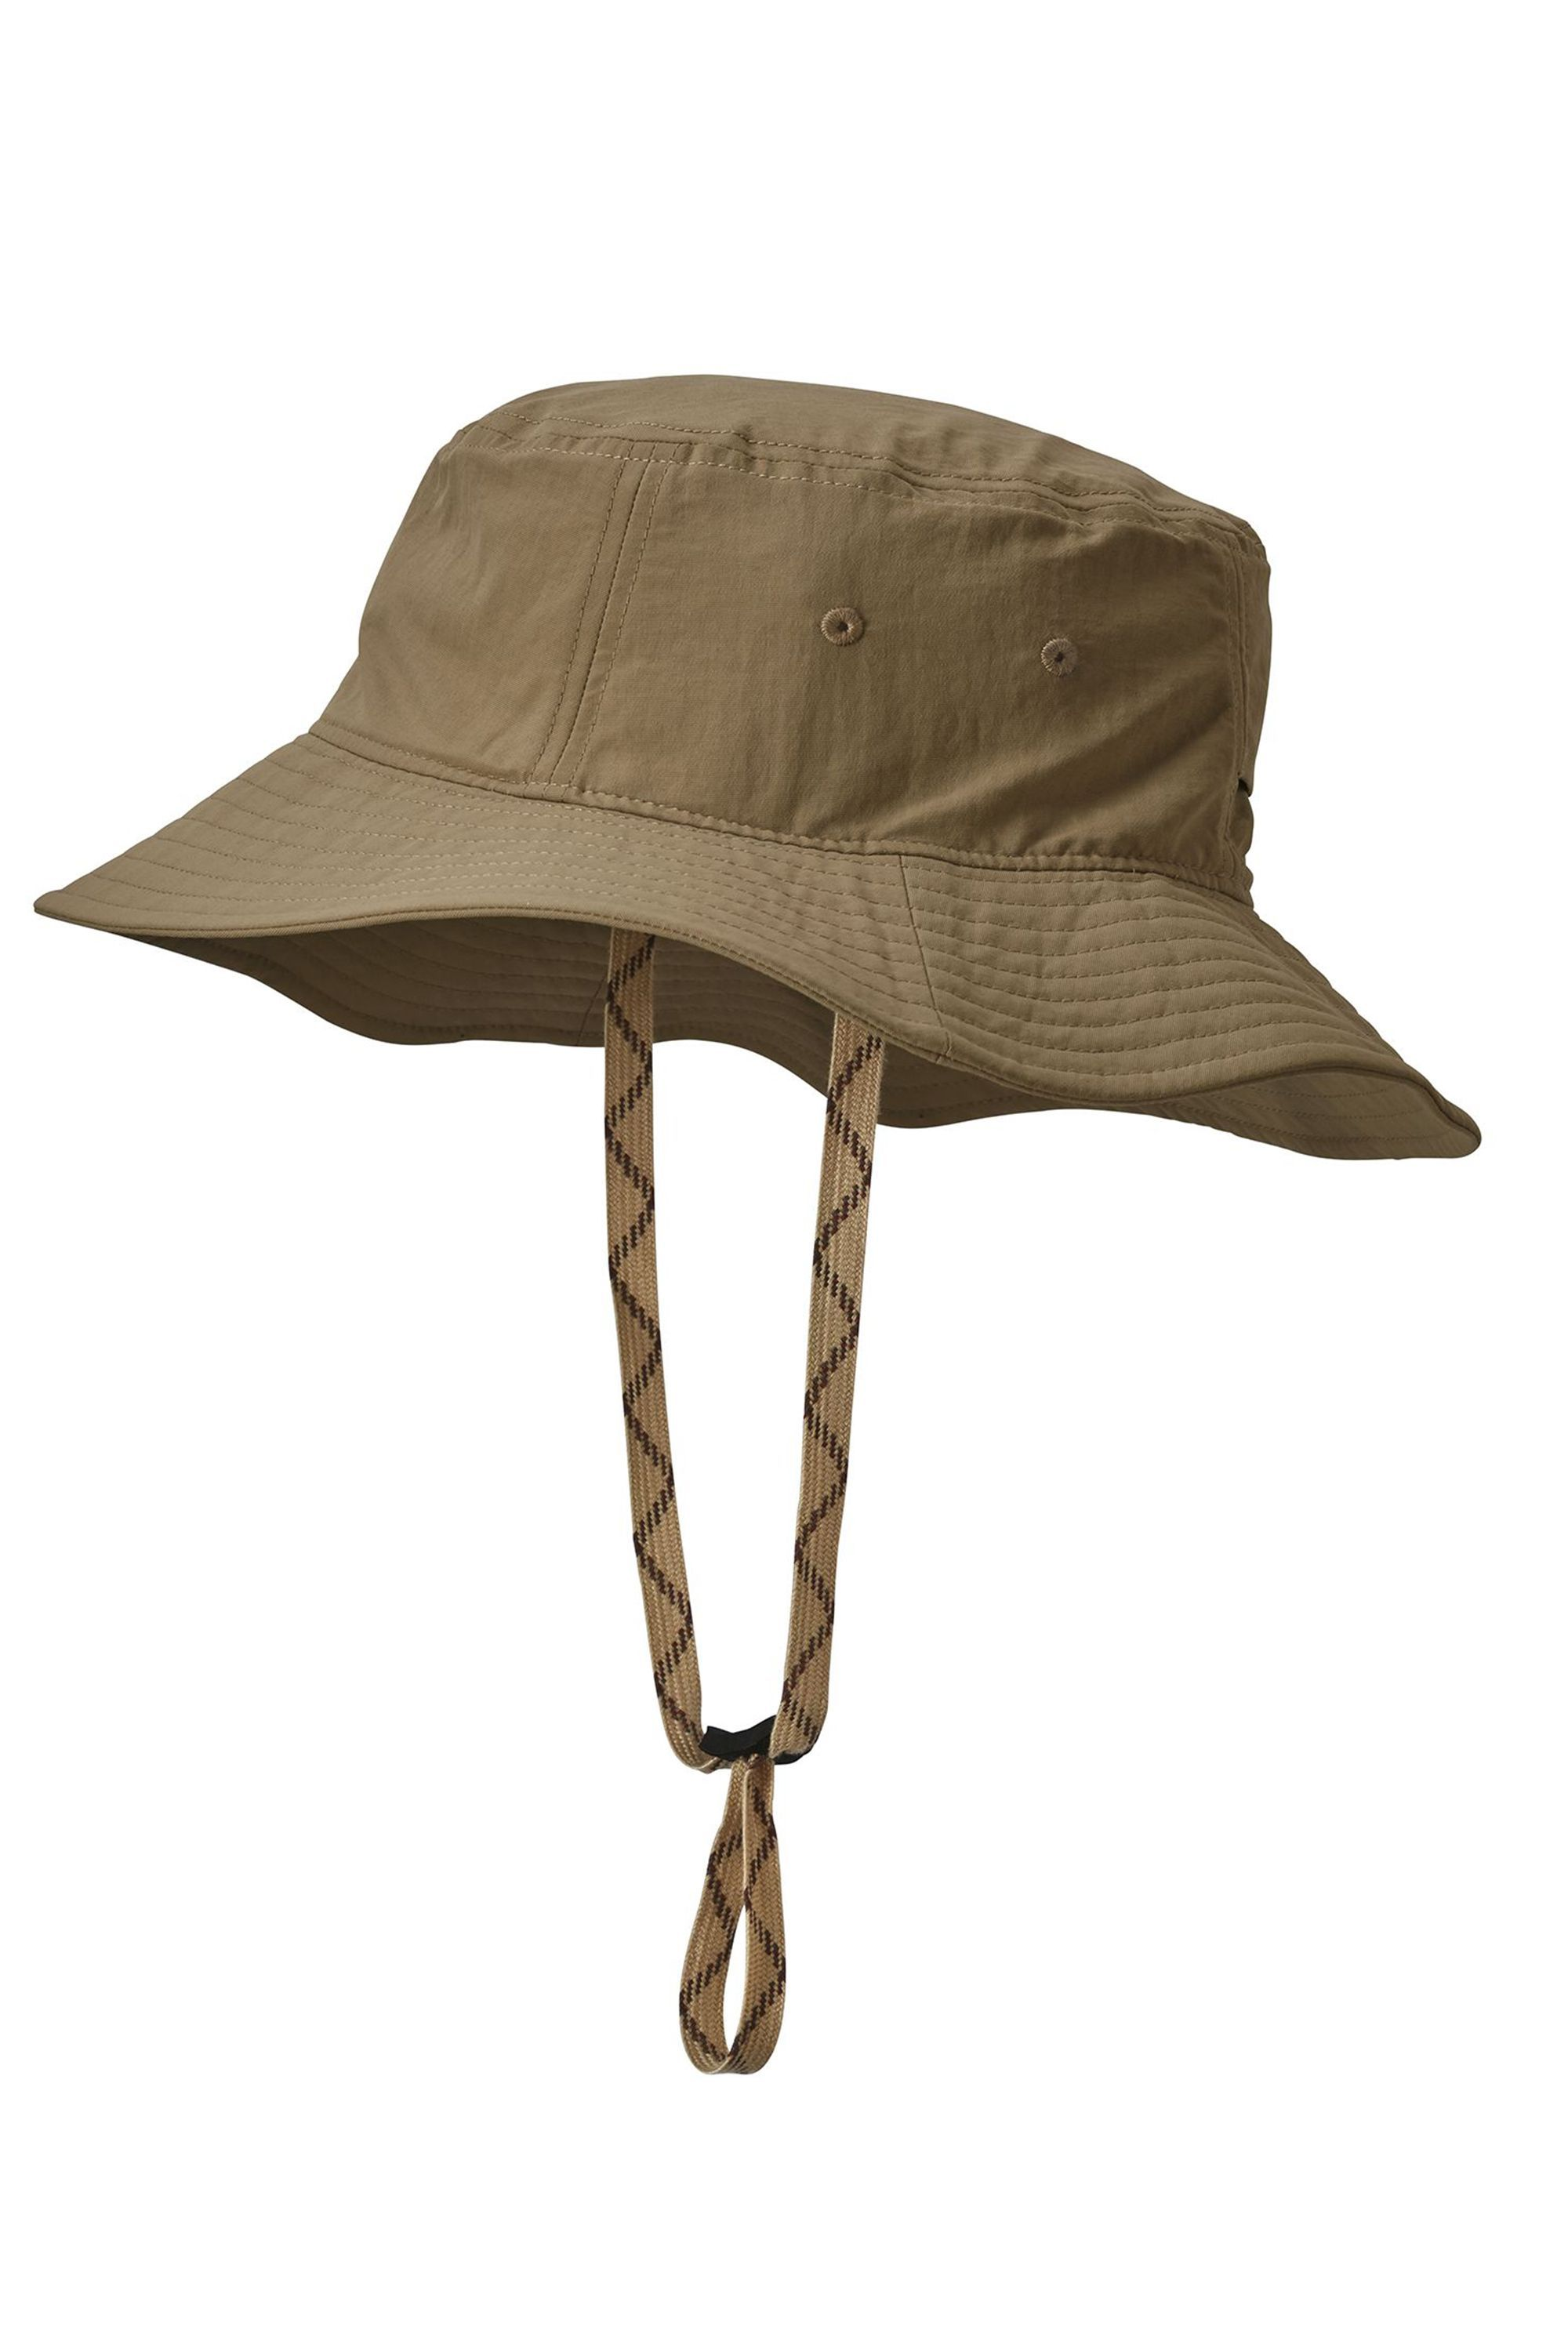 Mickledore Bucket Hat Patagonia patagonia.com $39.00 SHOP NOW His love of hiking means he gets a lot of sun. Get him a hat to protect him from UV rays, because you can only suggest he wear SPF so often.